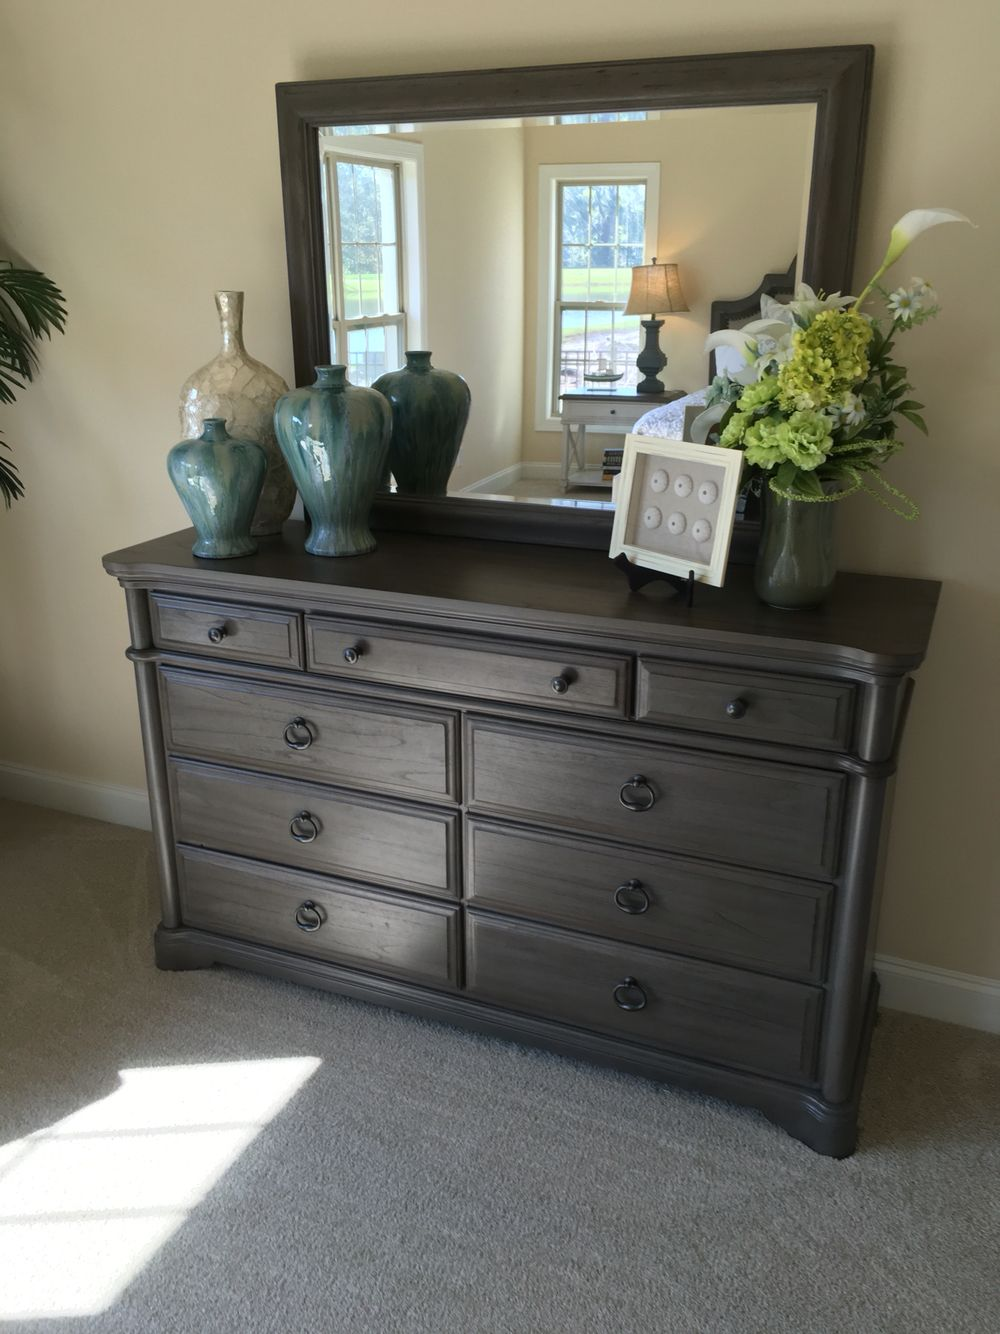 . How to stage a dresser   Bedrooms in 2019   Bedroom dressers